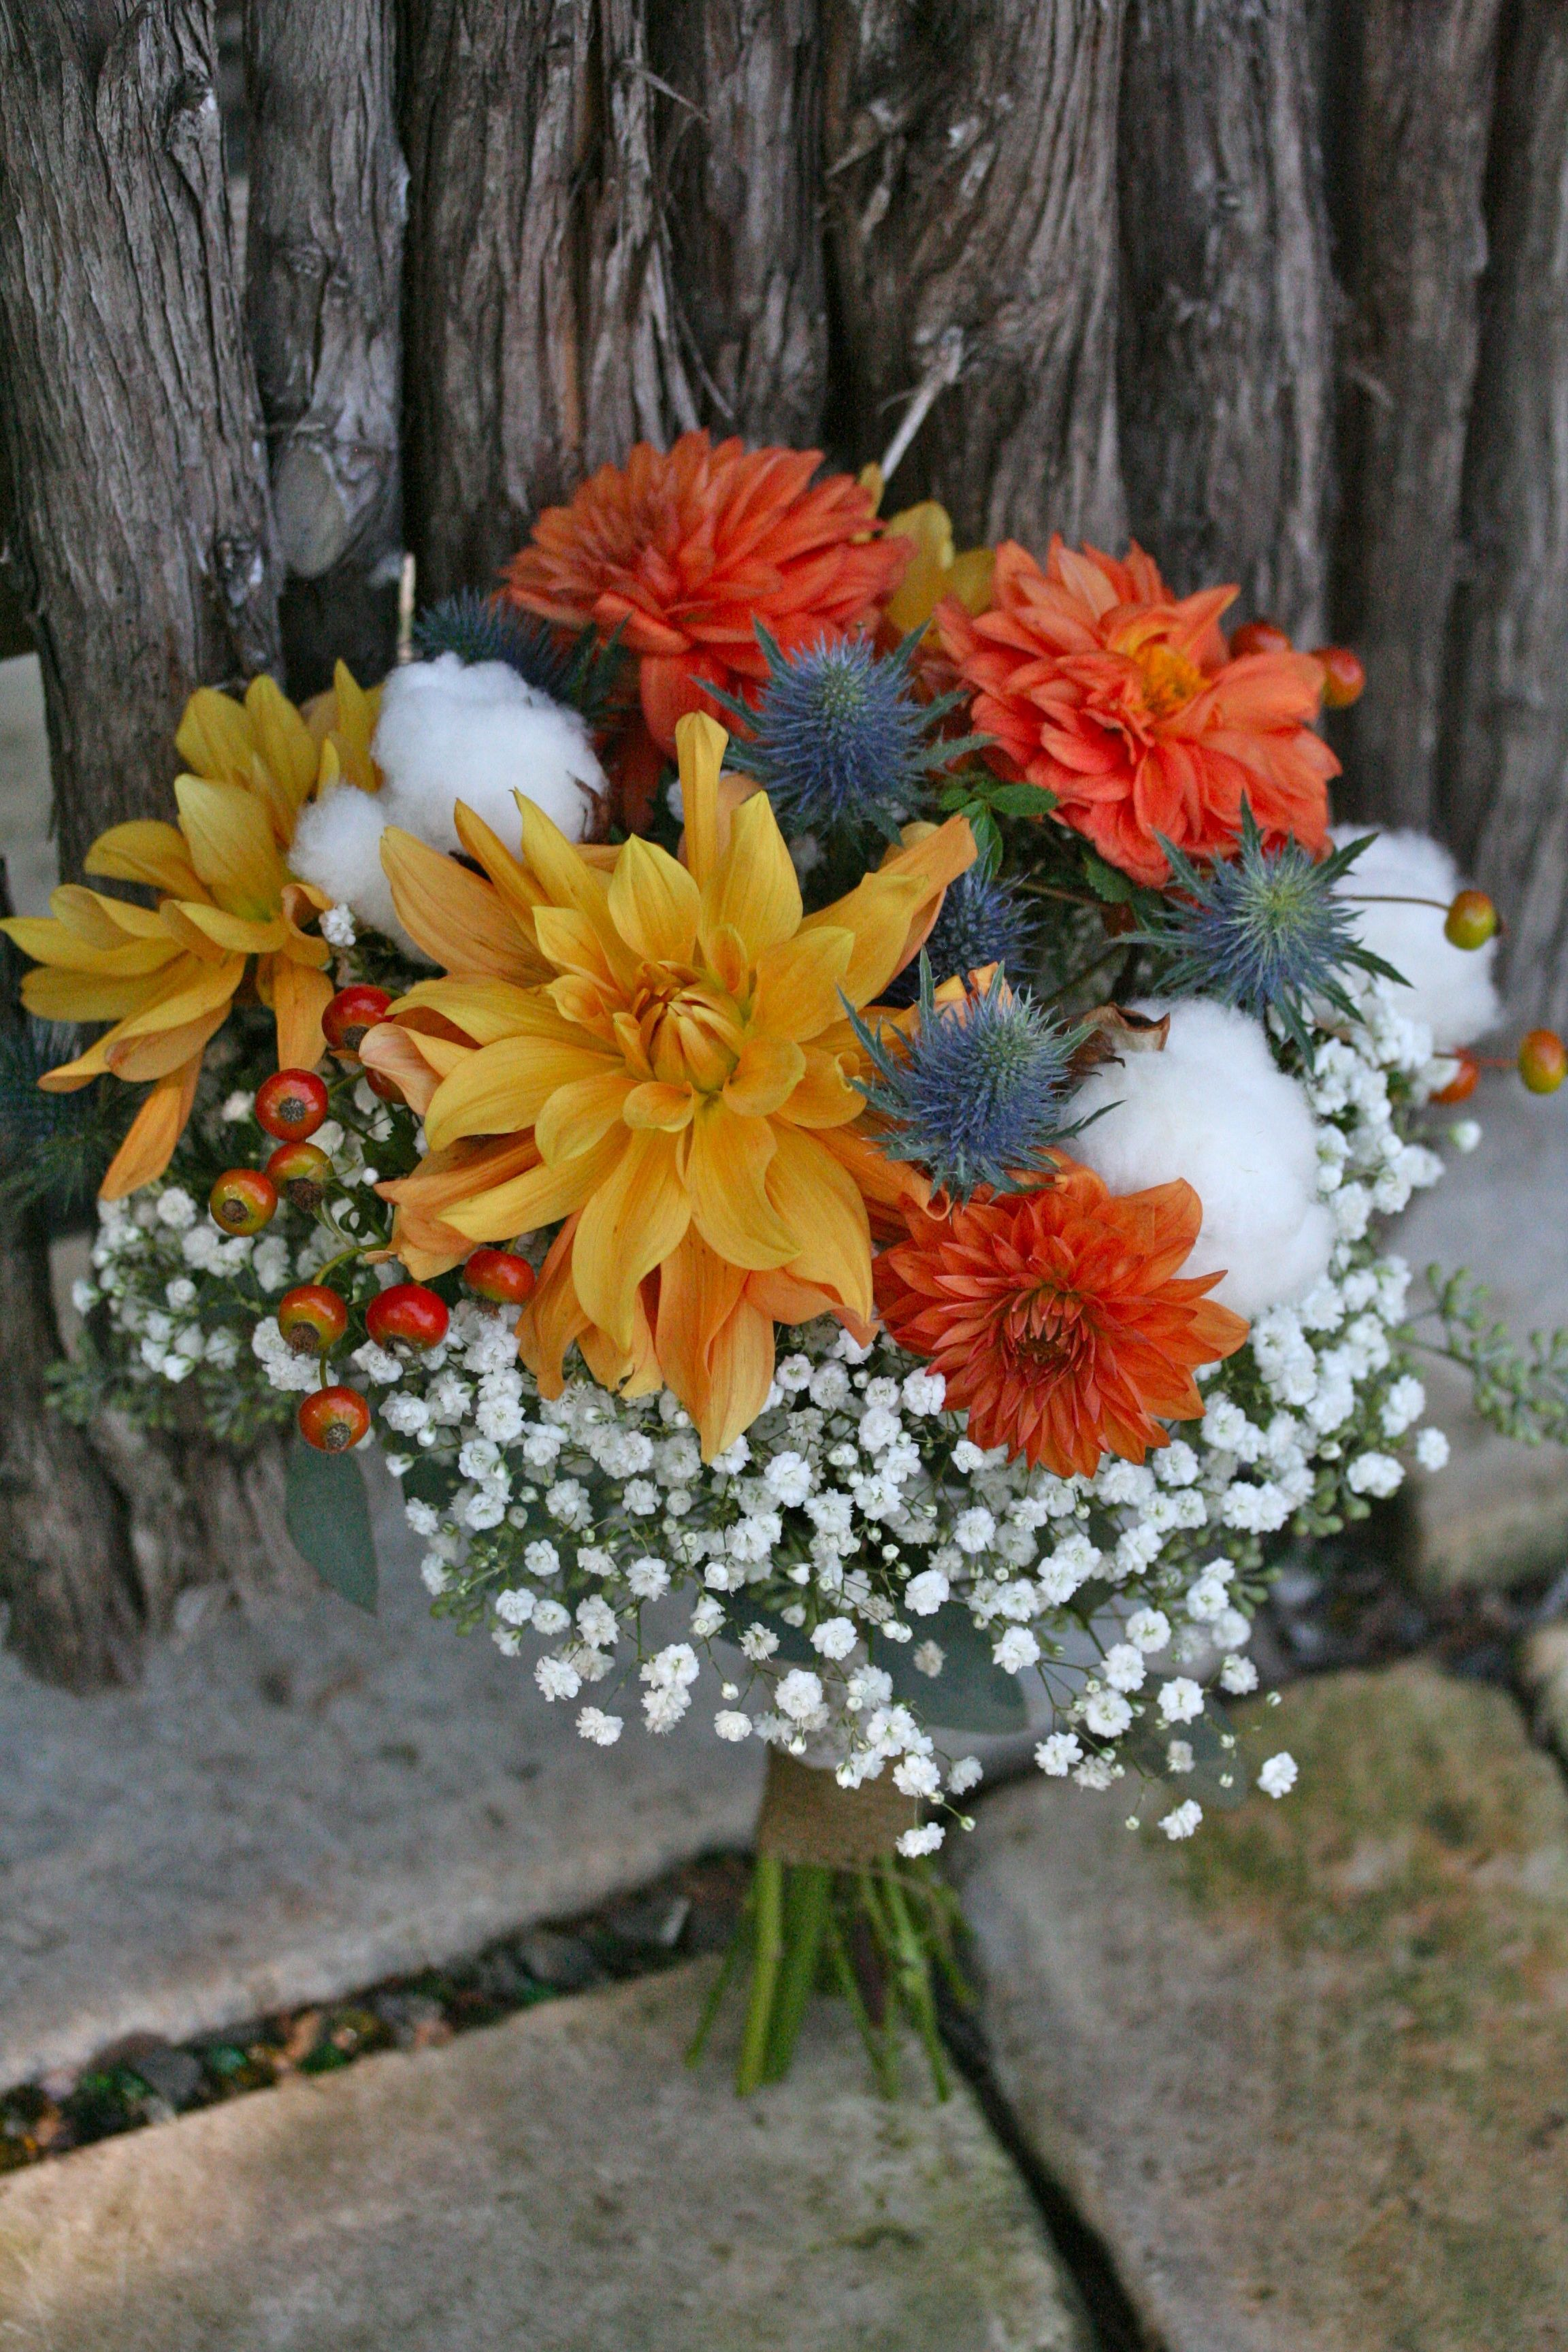 Rustic Fall Wedding Flowers Even Though My Renewal Is Over